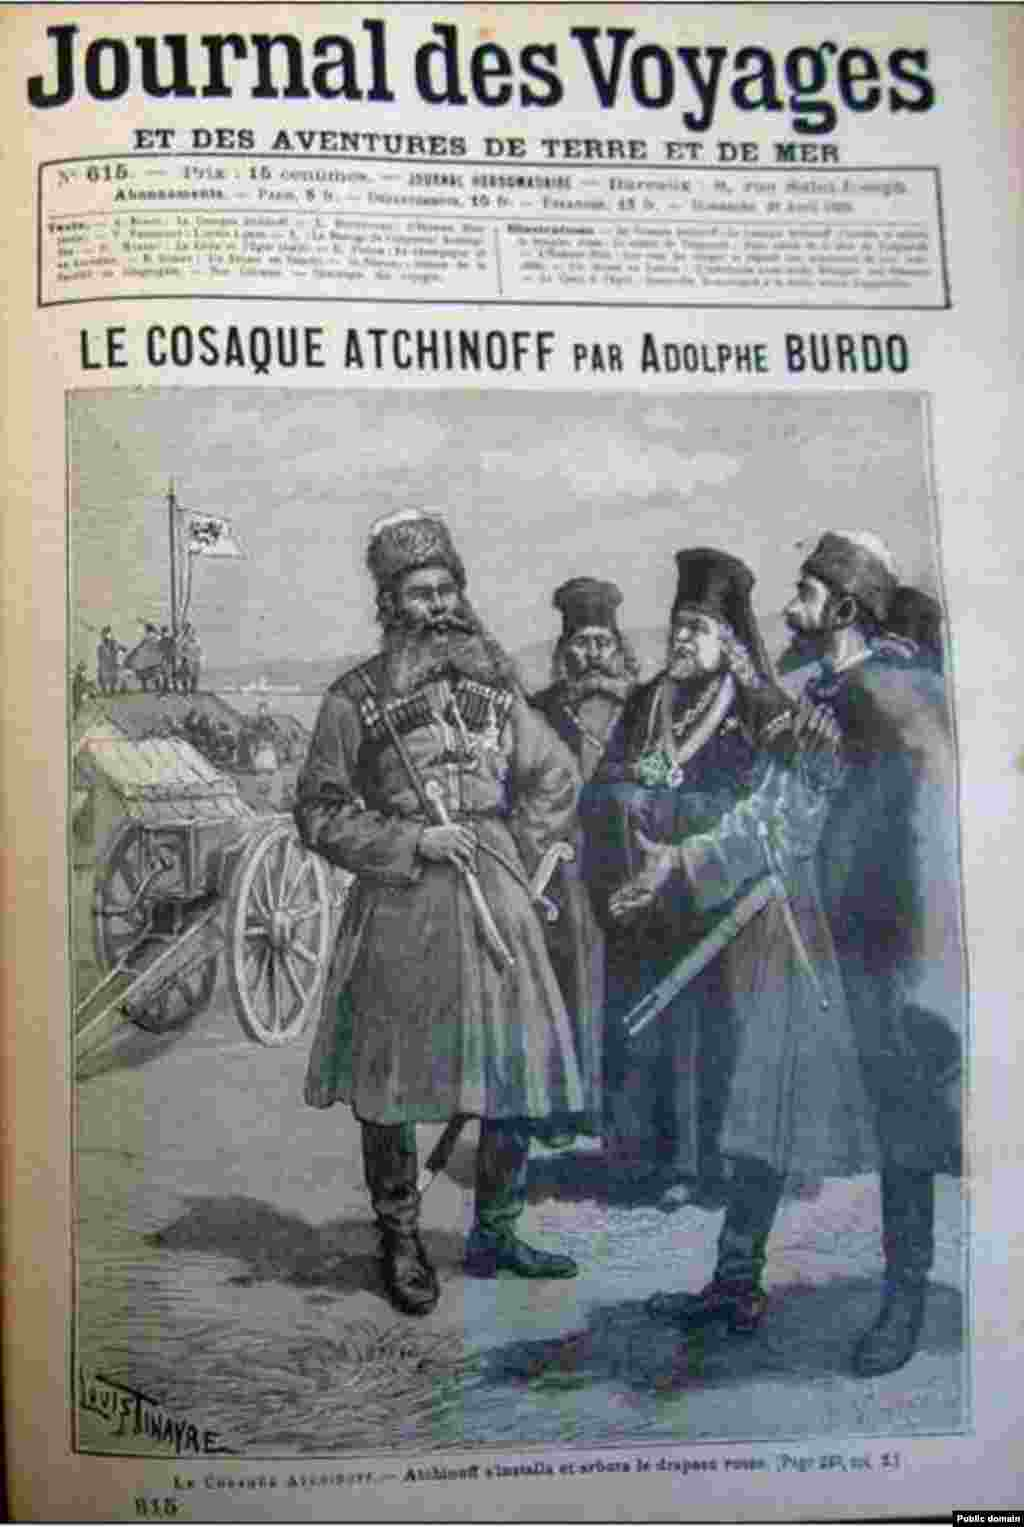 Achinov and his expedition made the front cover of the French weekly Journal Des Voyages shortly after setting off from Odesa in December 1888.